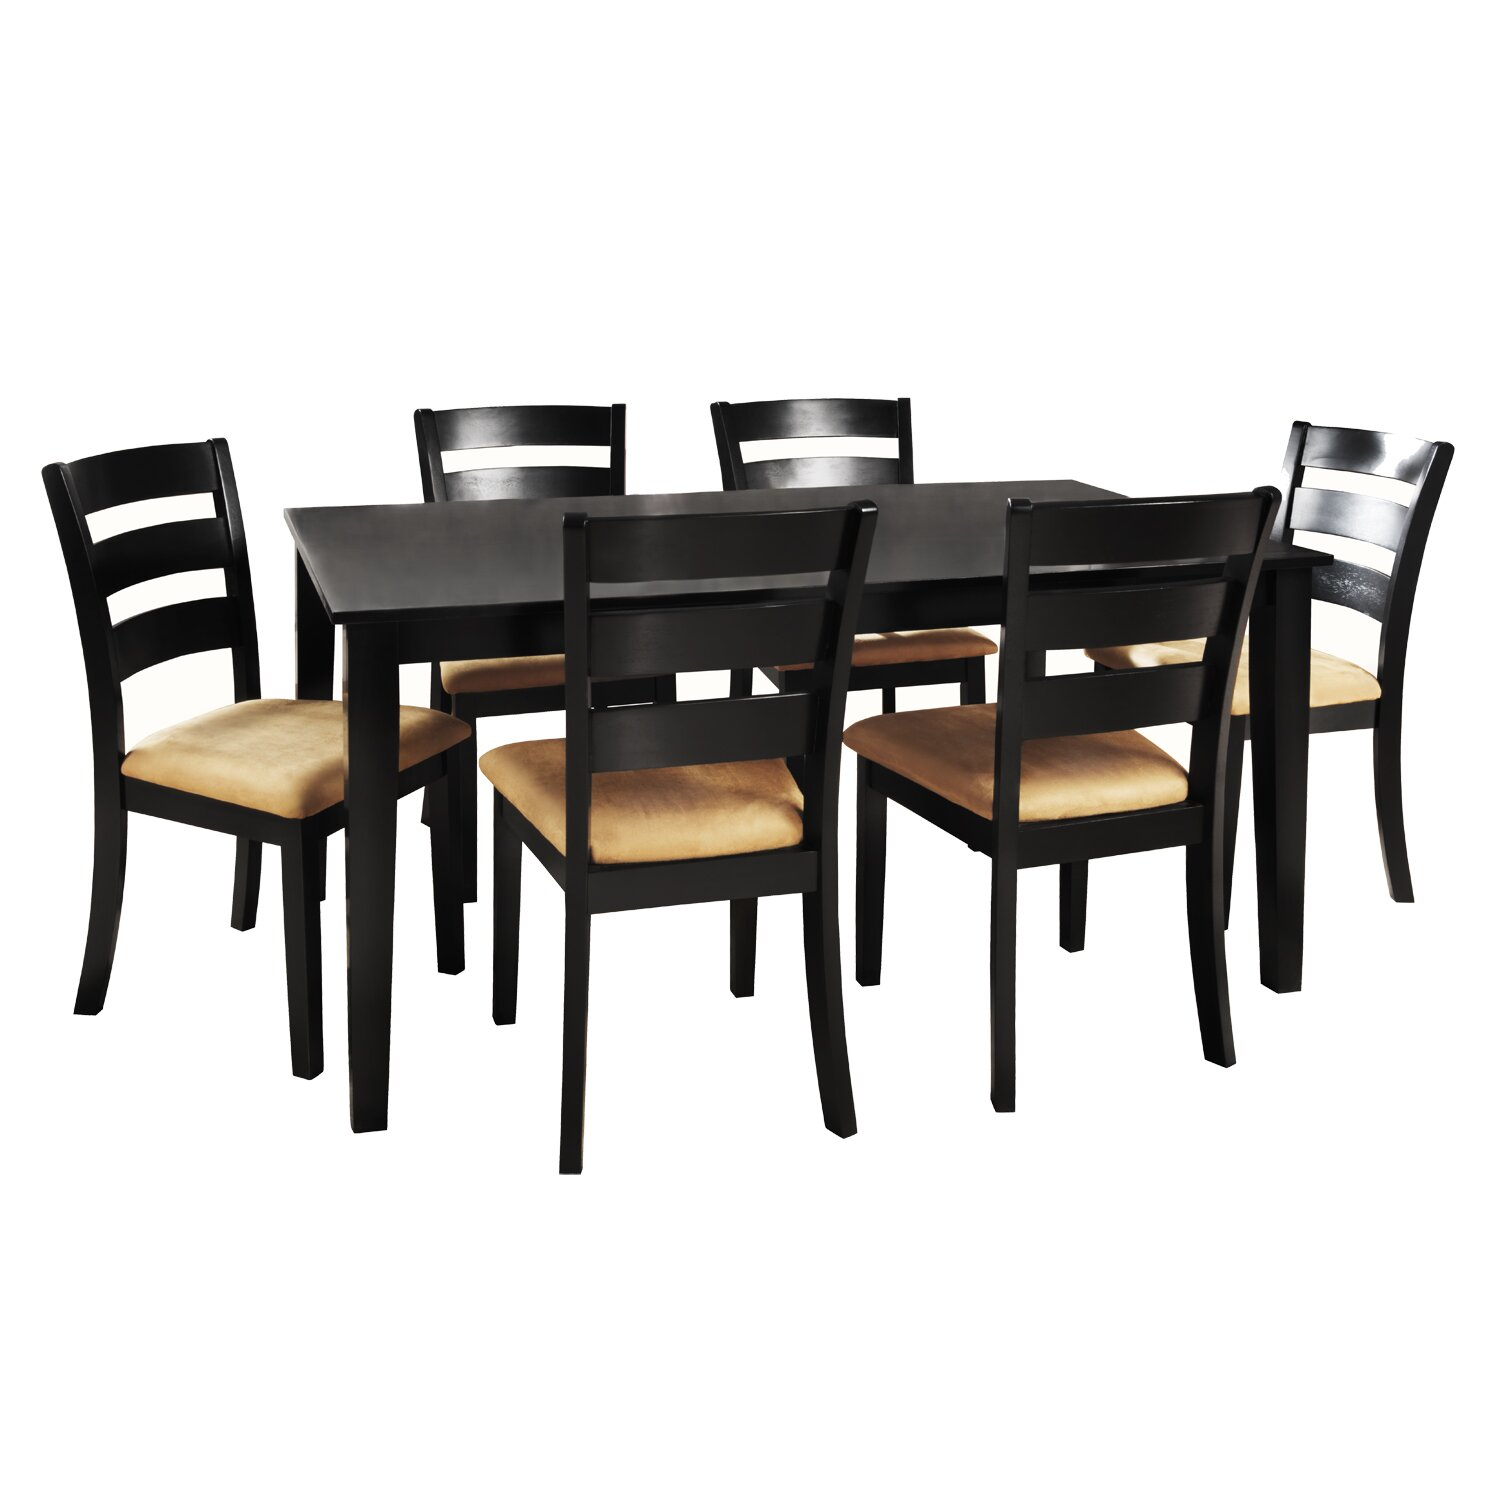 Kingstown home jeannette 7 piece dining set wayfair for 7 piece dining set